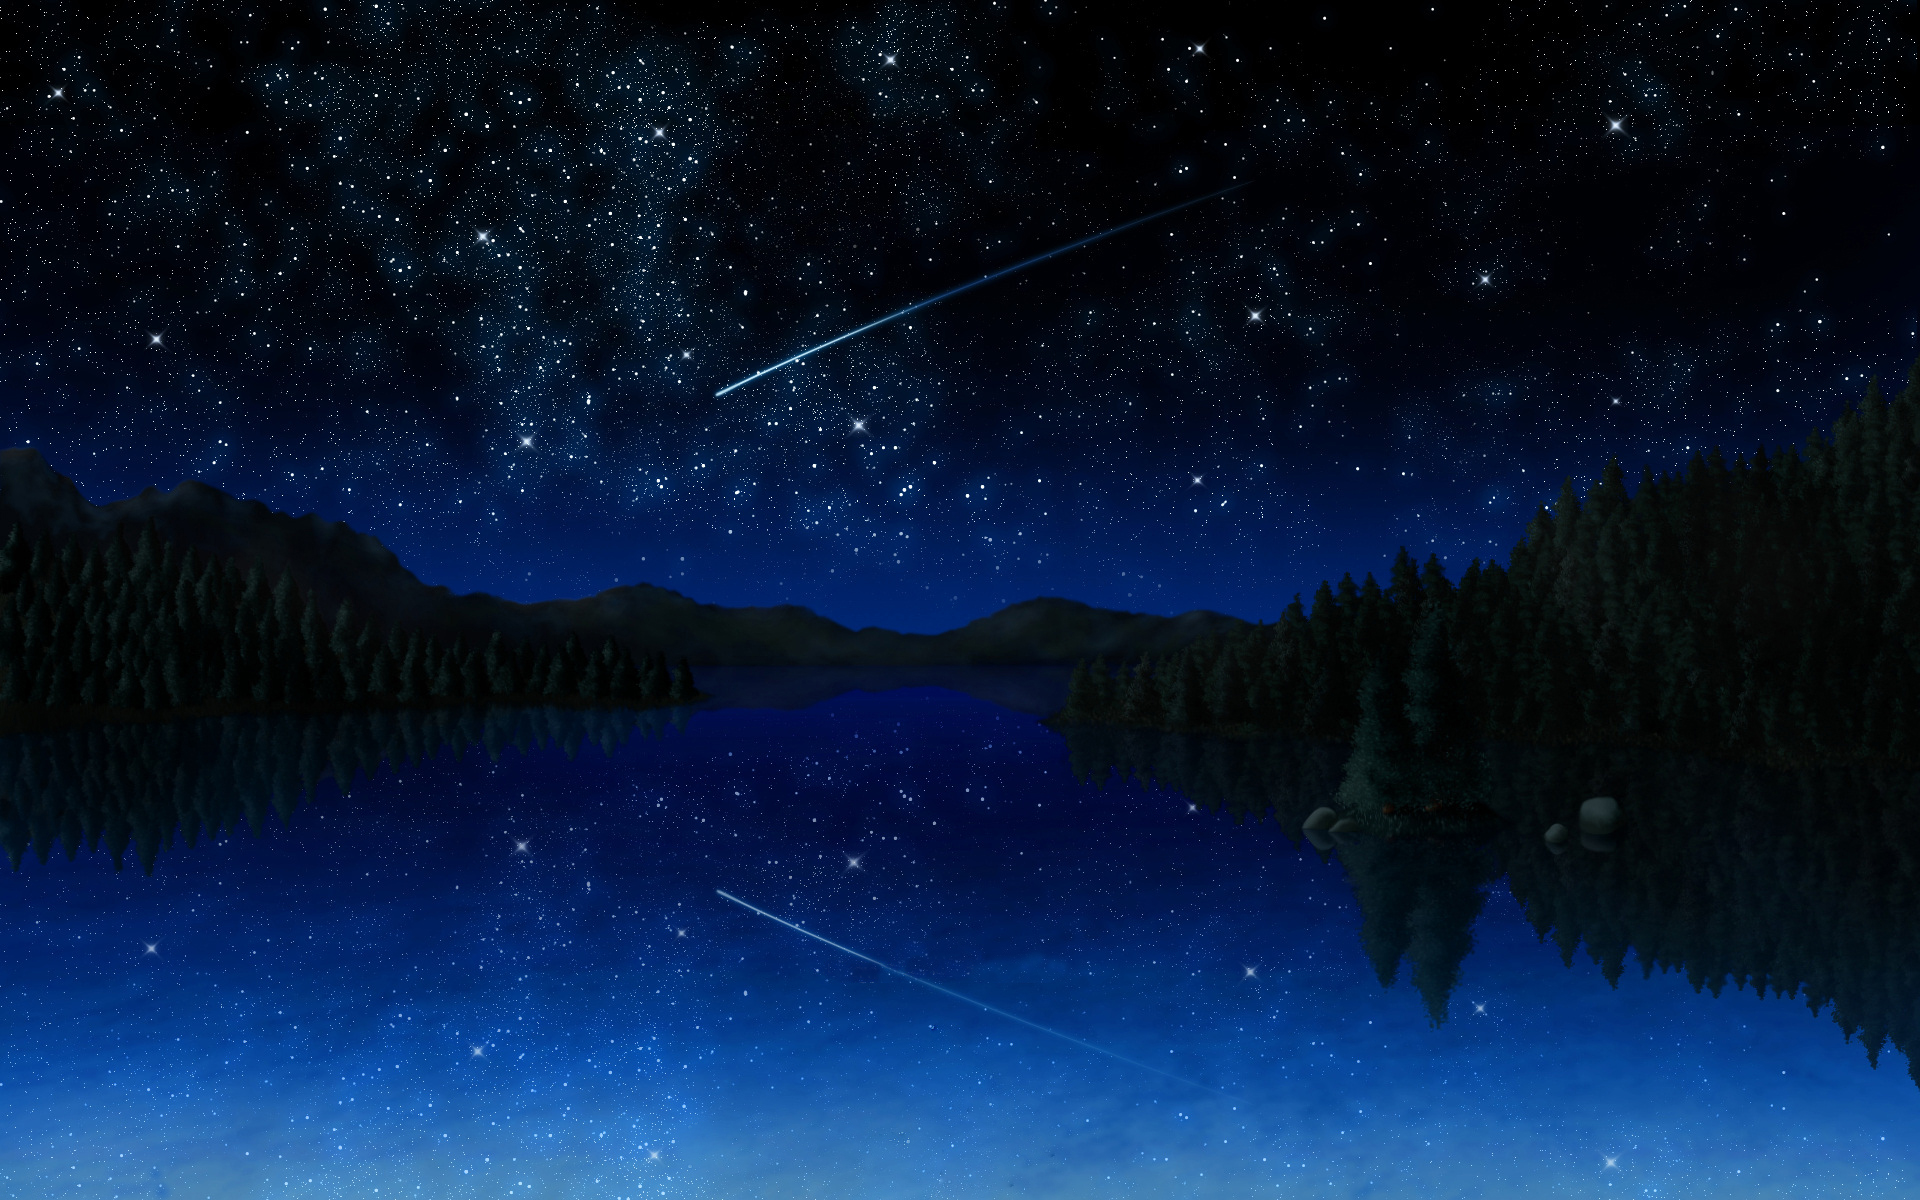 Artistic - Painting  - Stars - Lake - Mountains - Artistic - Space Wallpaper